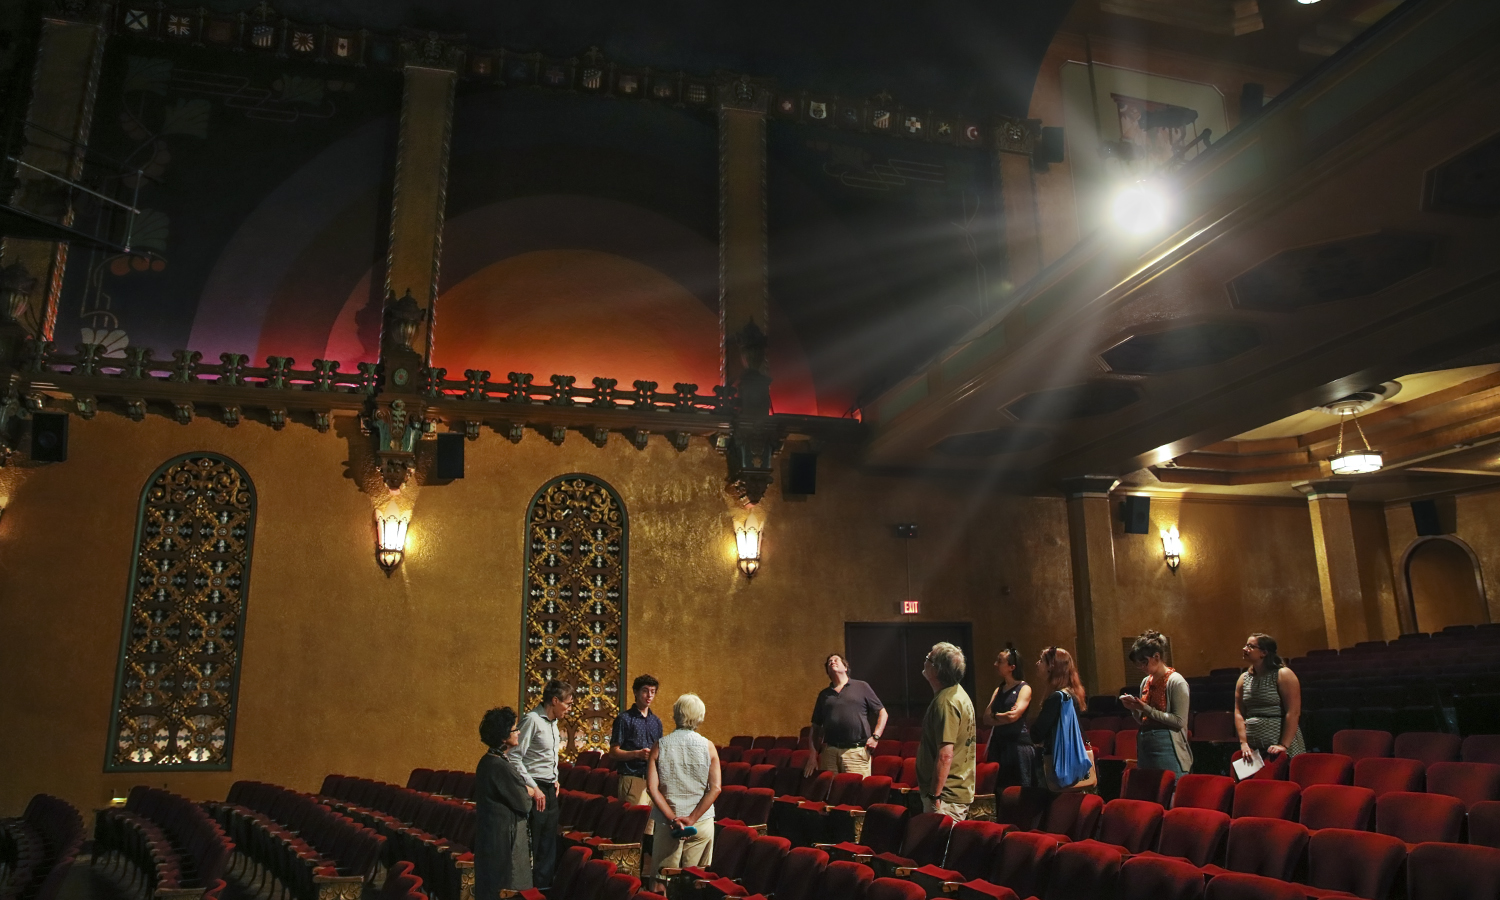 Austin Jennings 'X discusses the meaning behind the small flags lining the molding on the ceiling at the Smith Opera House.